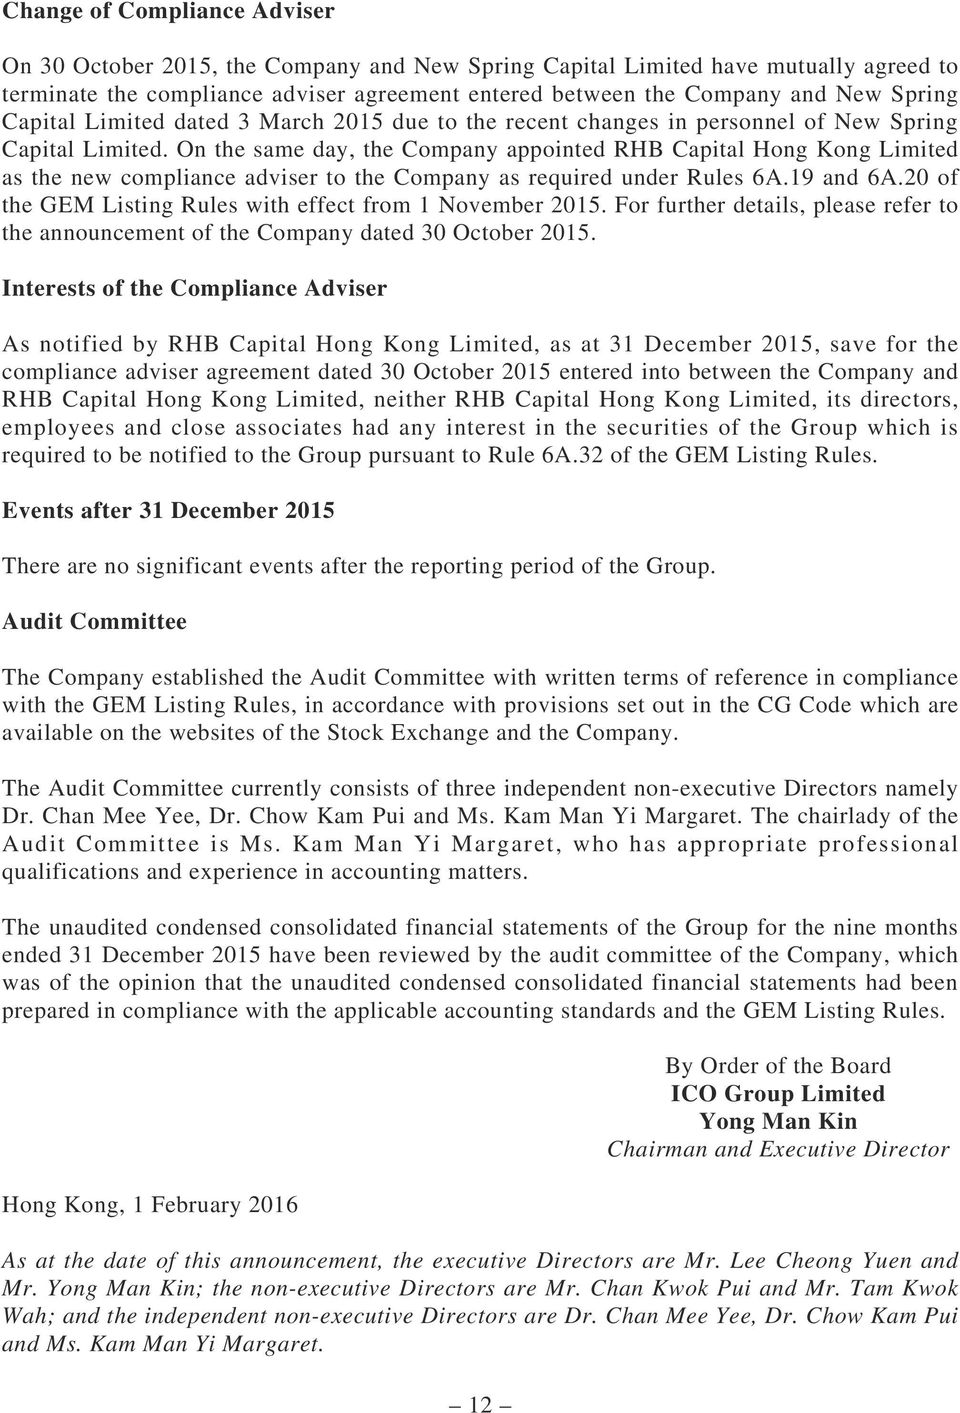 On the same day, the Company appointed RHB Capital Hong Kong Limited as the new compliance adviser to the Company as required under Rules 6A.19 and 6A.